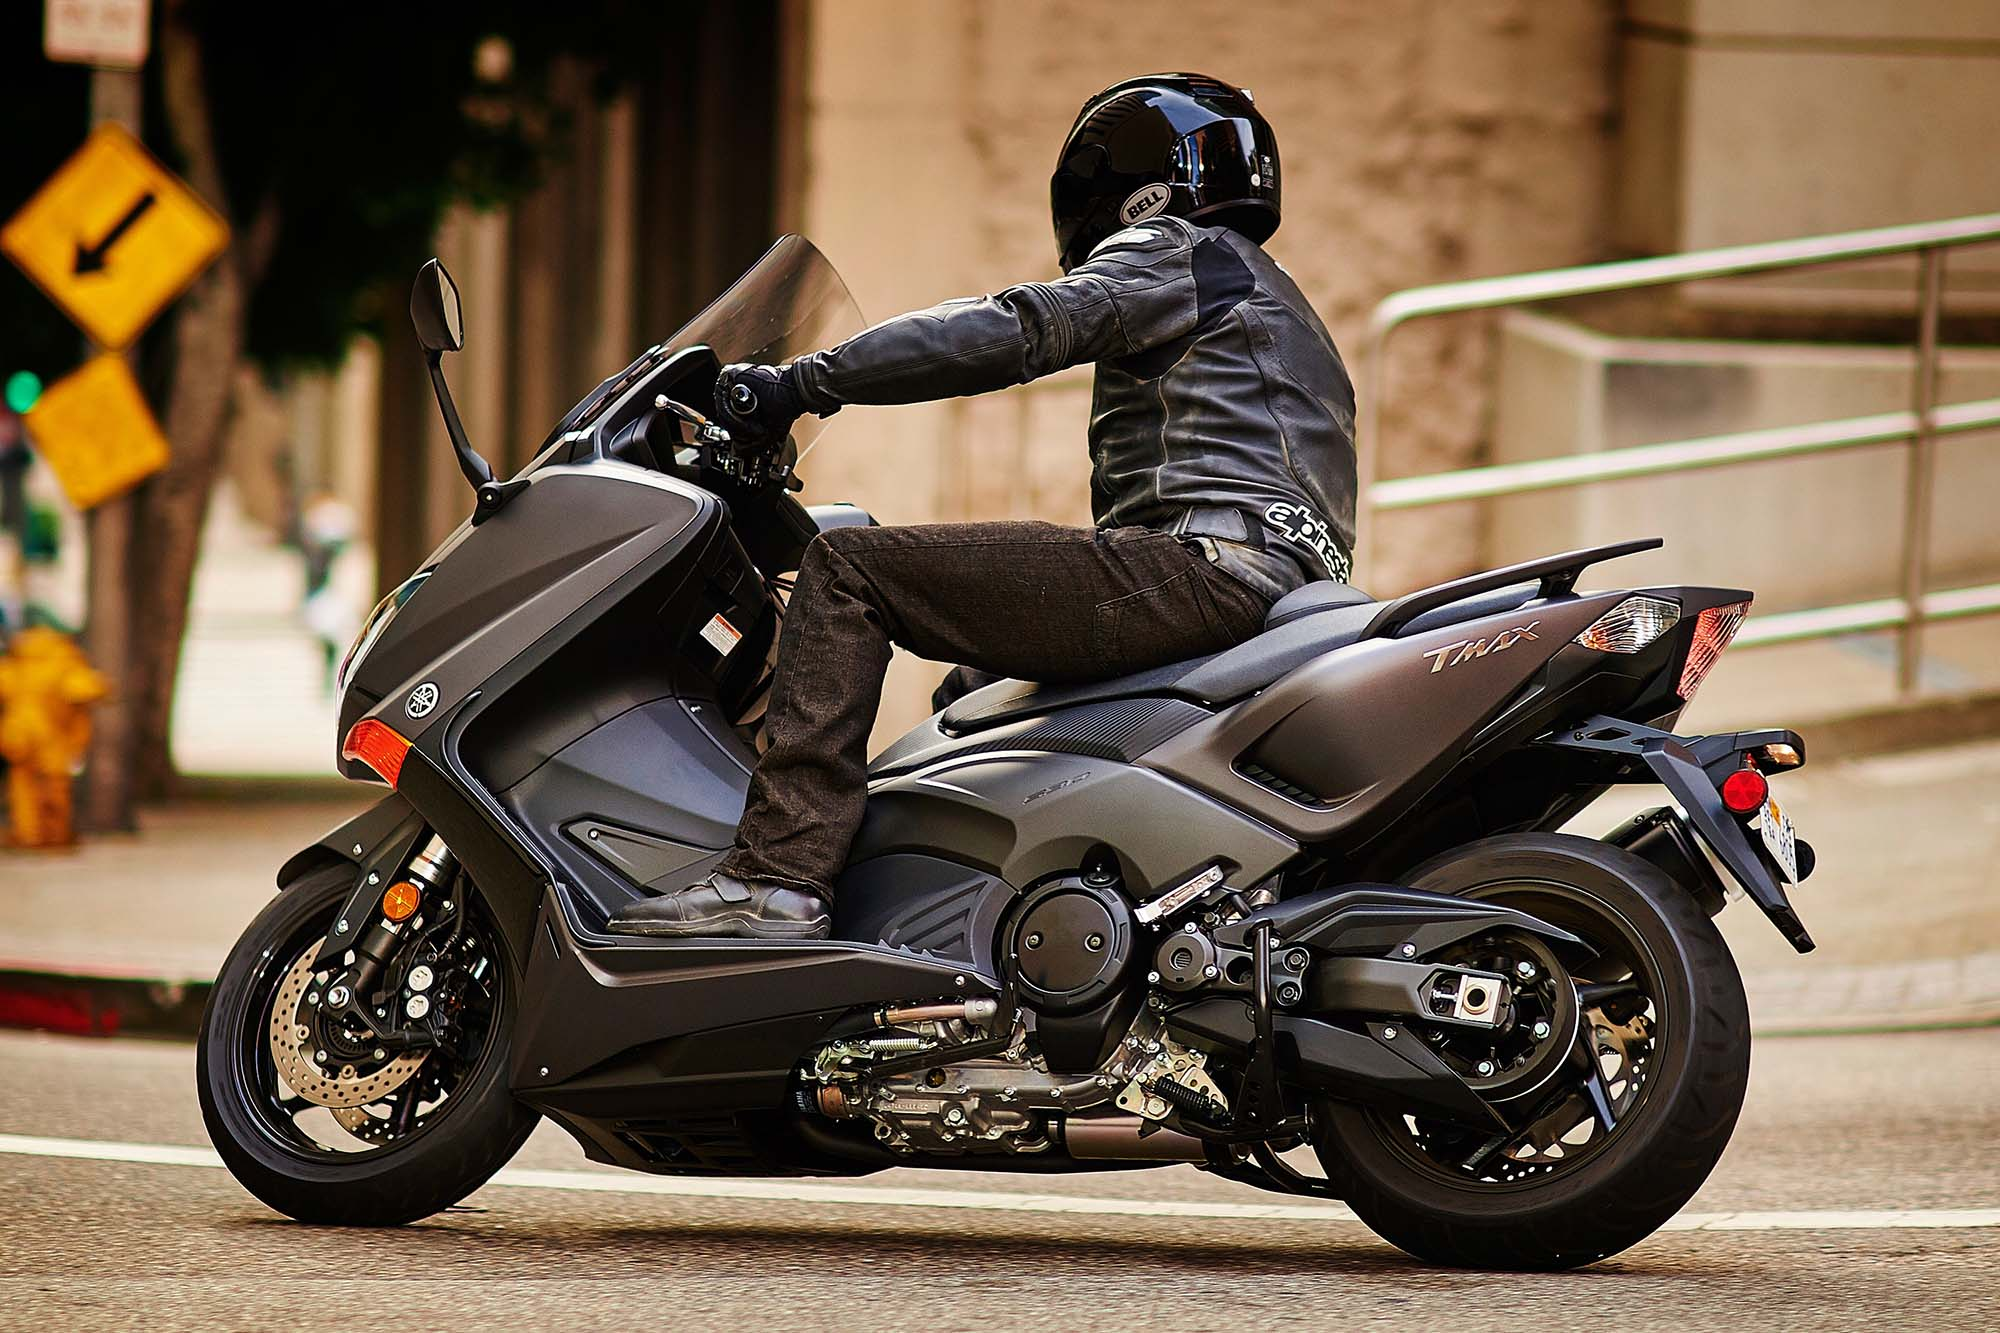 Yamaha tmax photo - 8